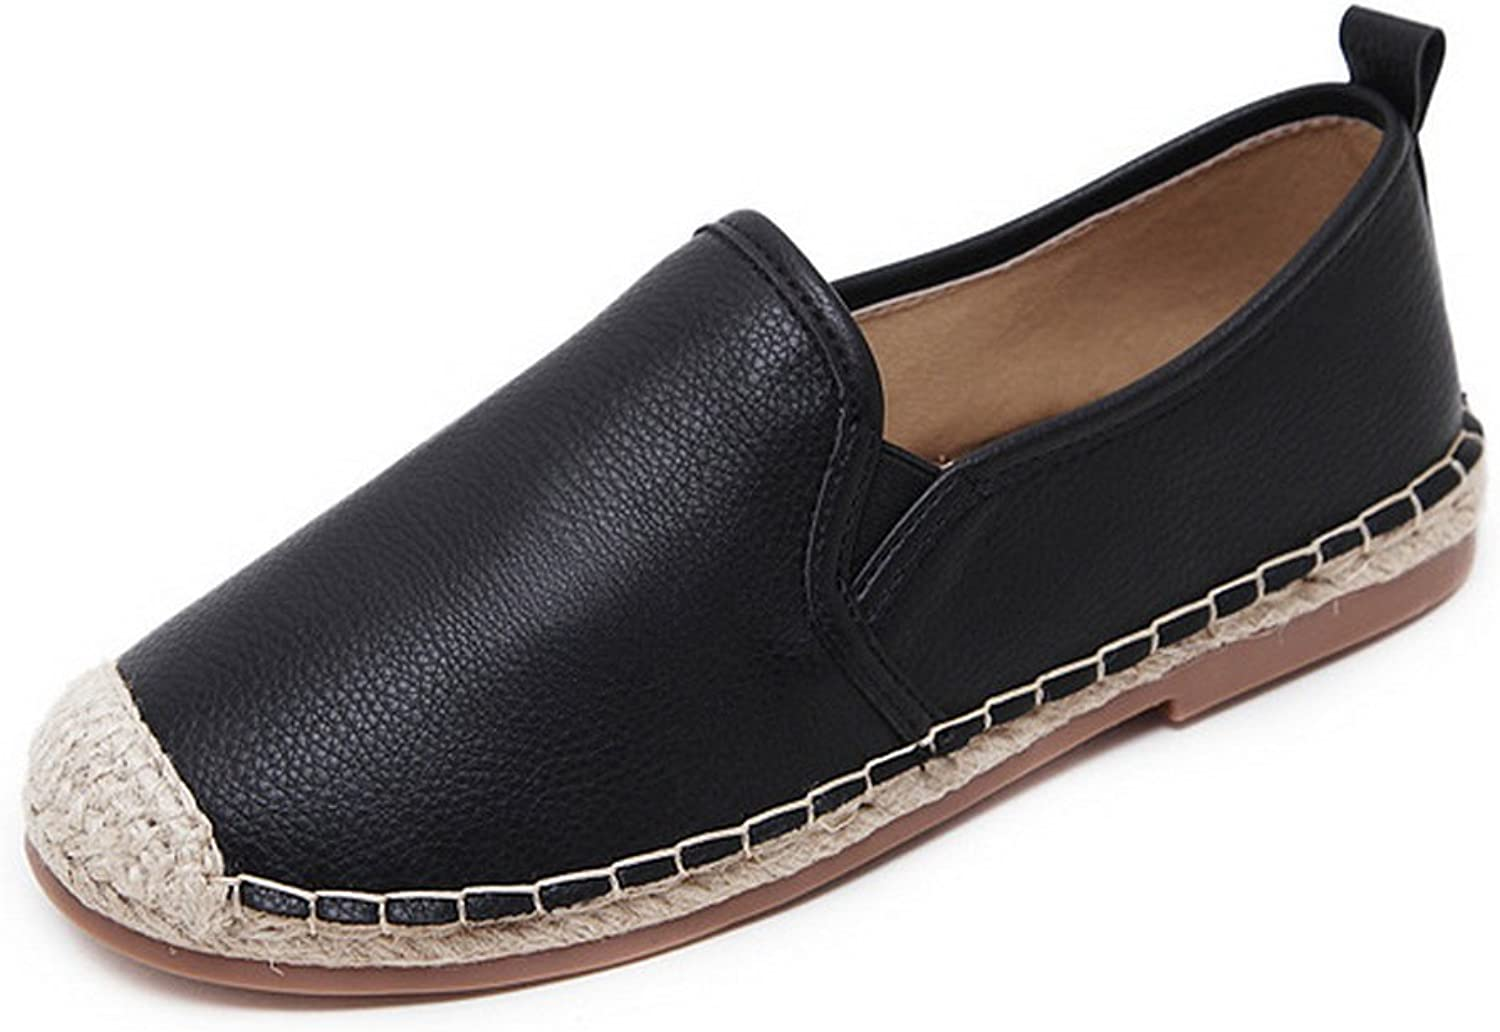 1TO9 Womens No-Closure Round-Toe Solid Urethane Flats shoes